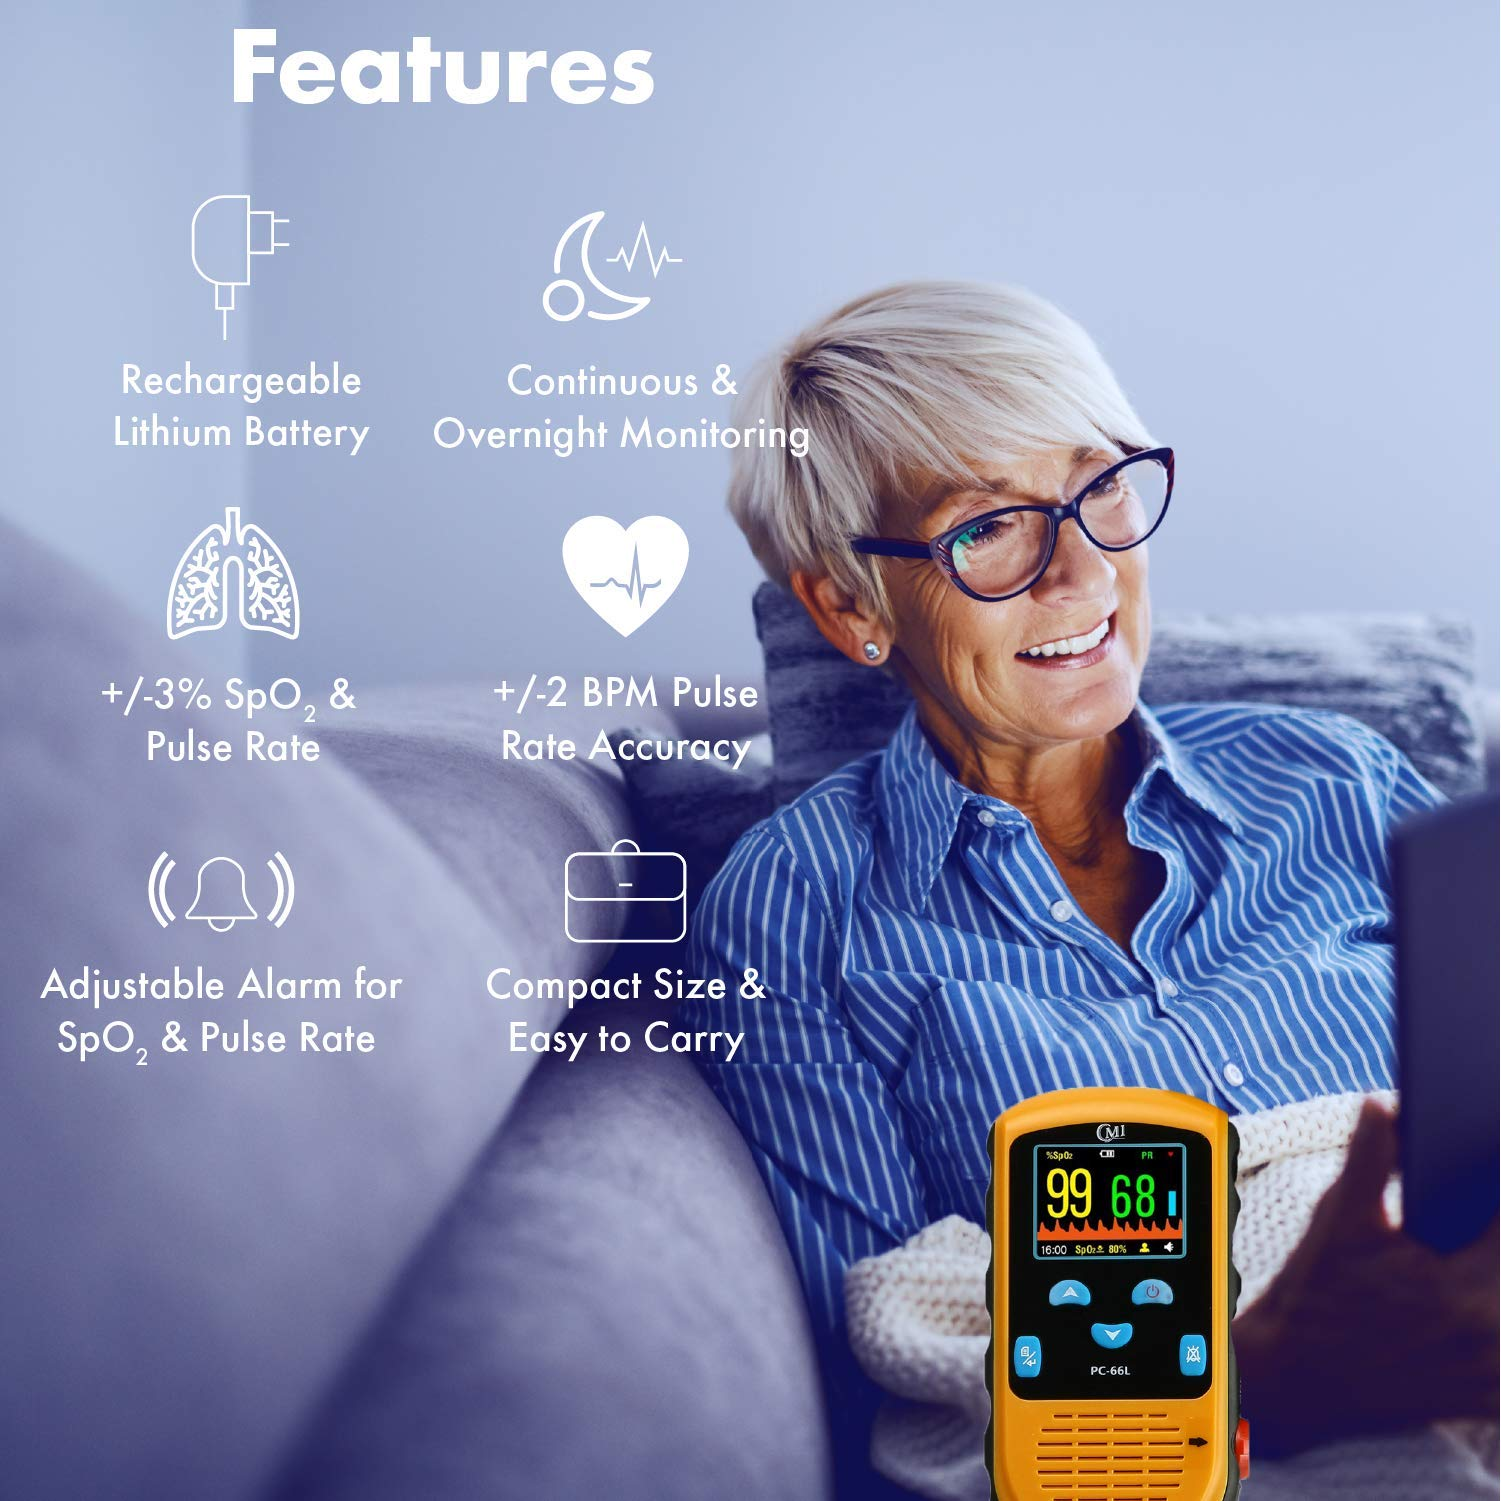 CMI Health Rechargeable Pulse Oximeter - Adult Finger Sensor for Continuous Monitoring & Spot-Checking - Adjustable Alarm for Pulse Rate and SpO2 Levels - Carry Case, AC Adapter Included